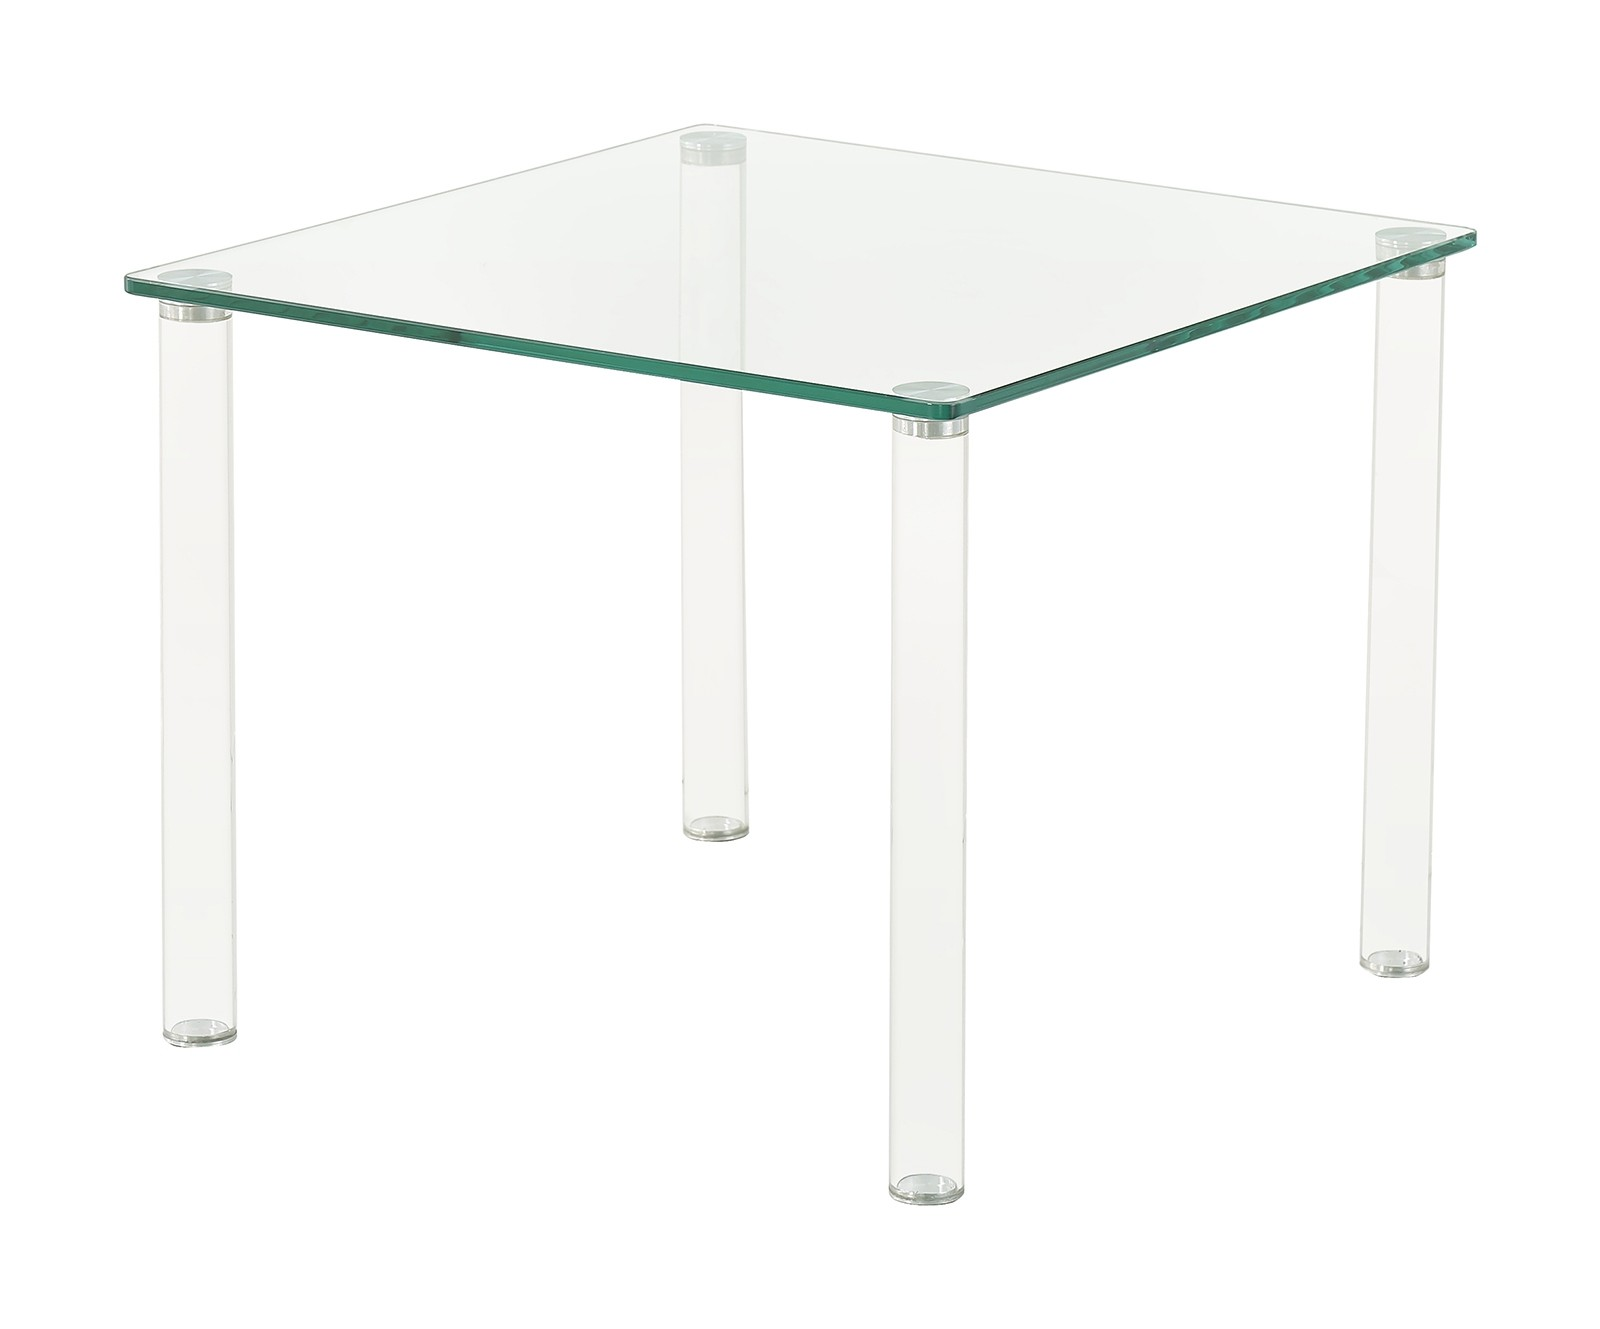 Glacier Modern Glass and Tube Leg Design Side Table